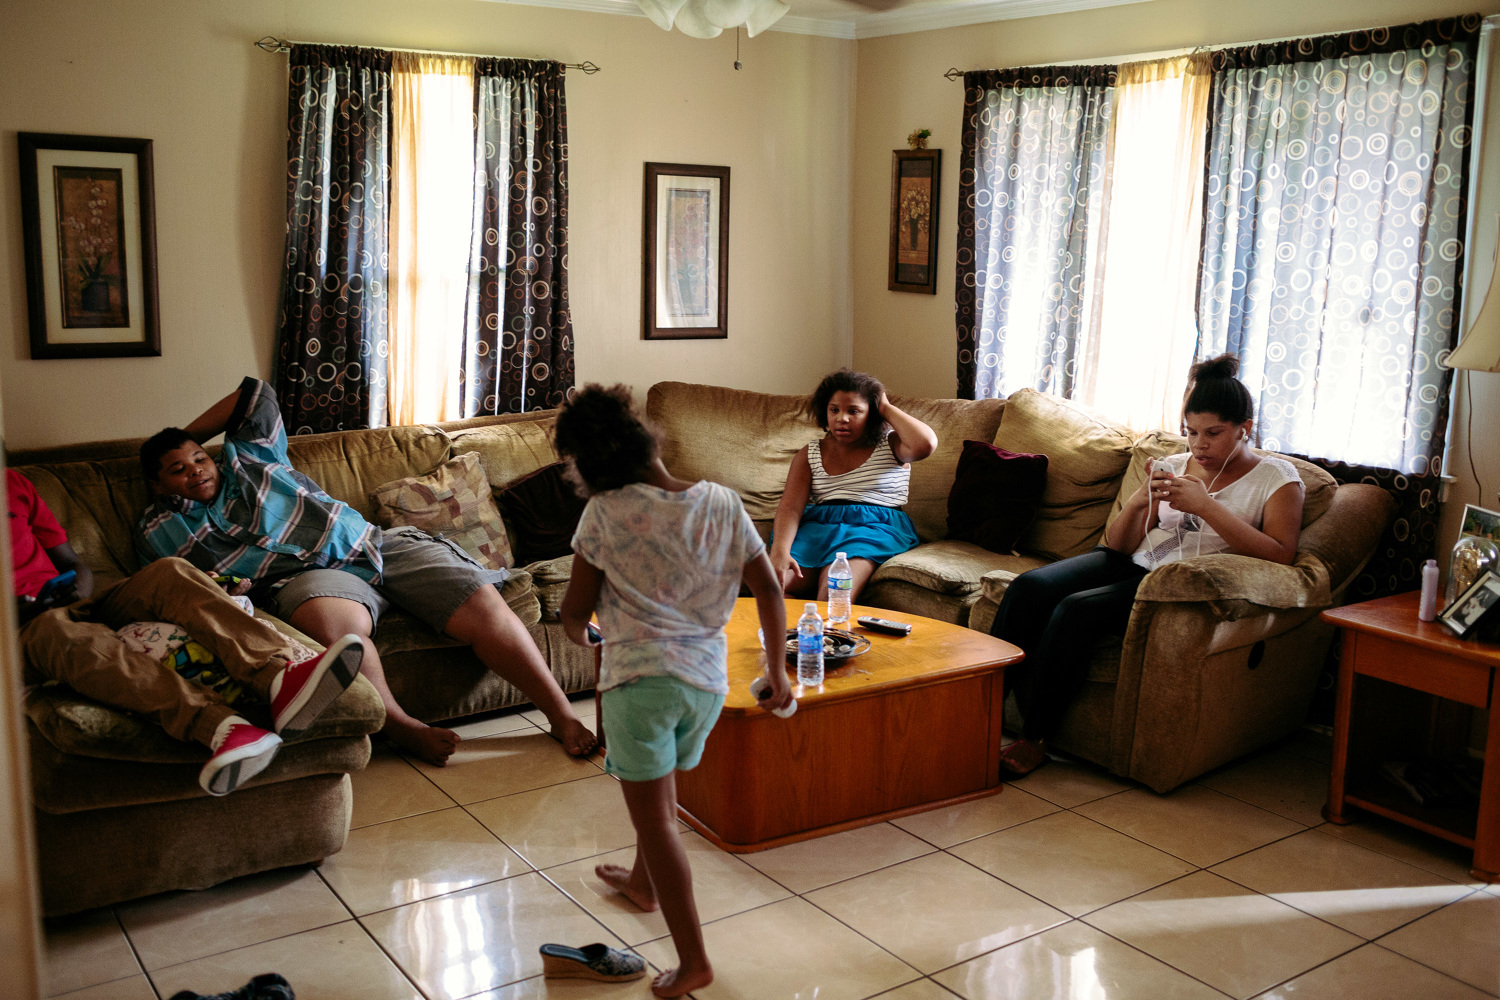 Upper middle class living room - A Neighborhood Comprised Mostly Of Upper Middle Class White Families Where Some Of The Worst Flooding Occurred In The Days After Hurricane Katrina Made